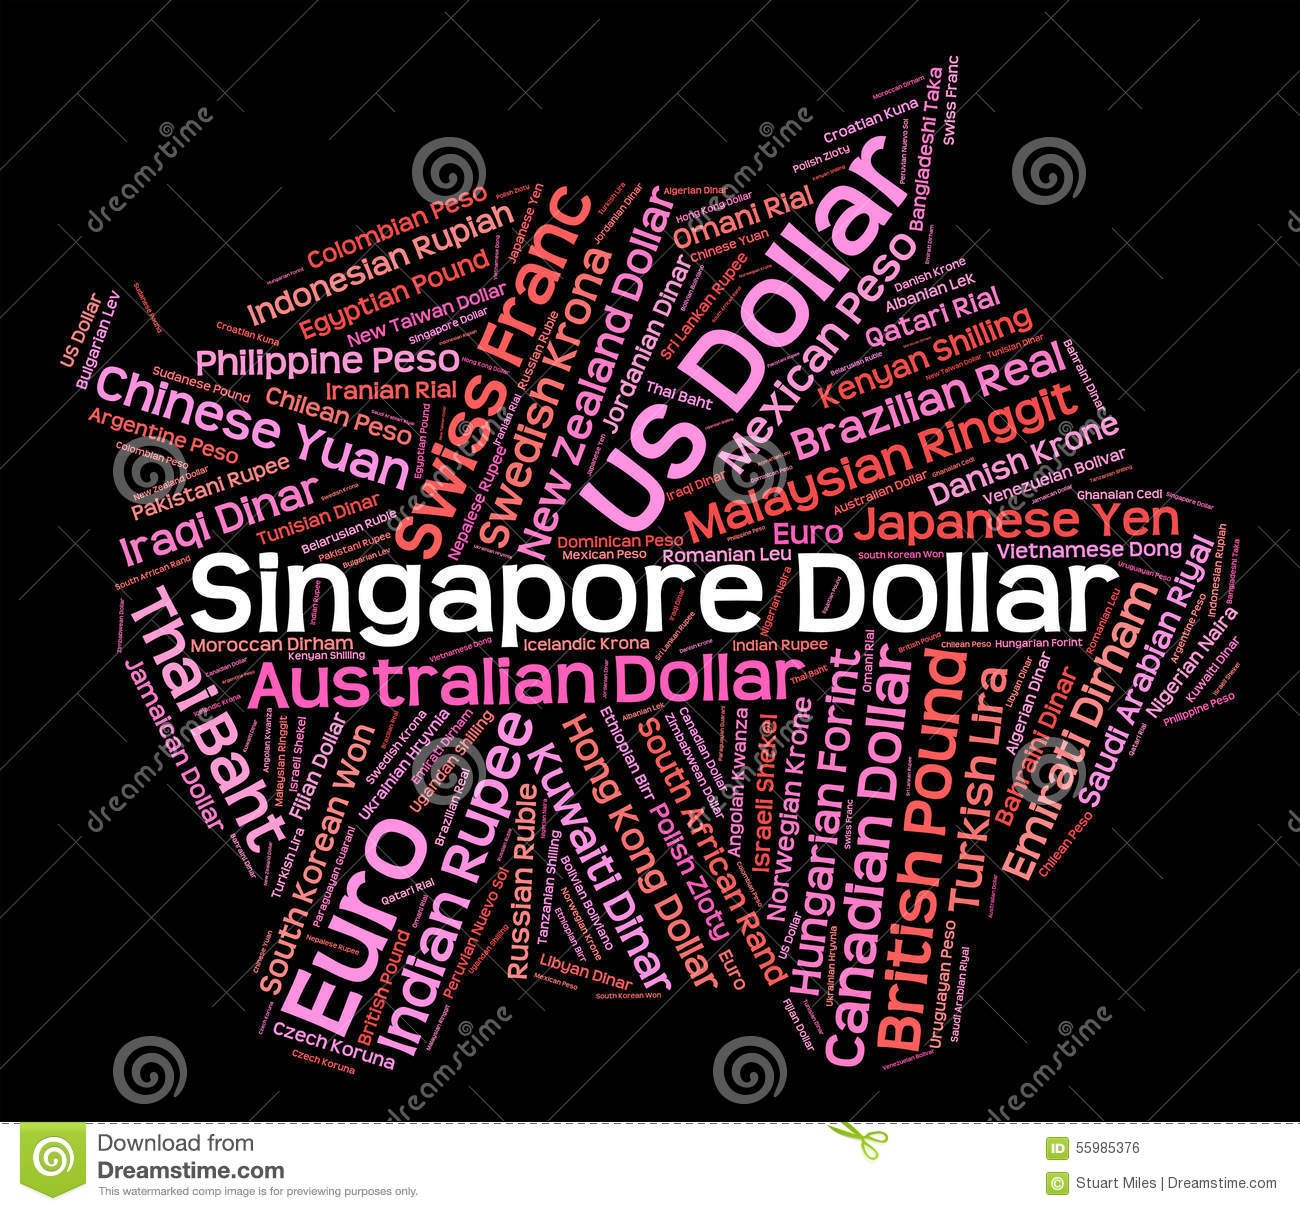 Top forex broker in singapore